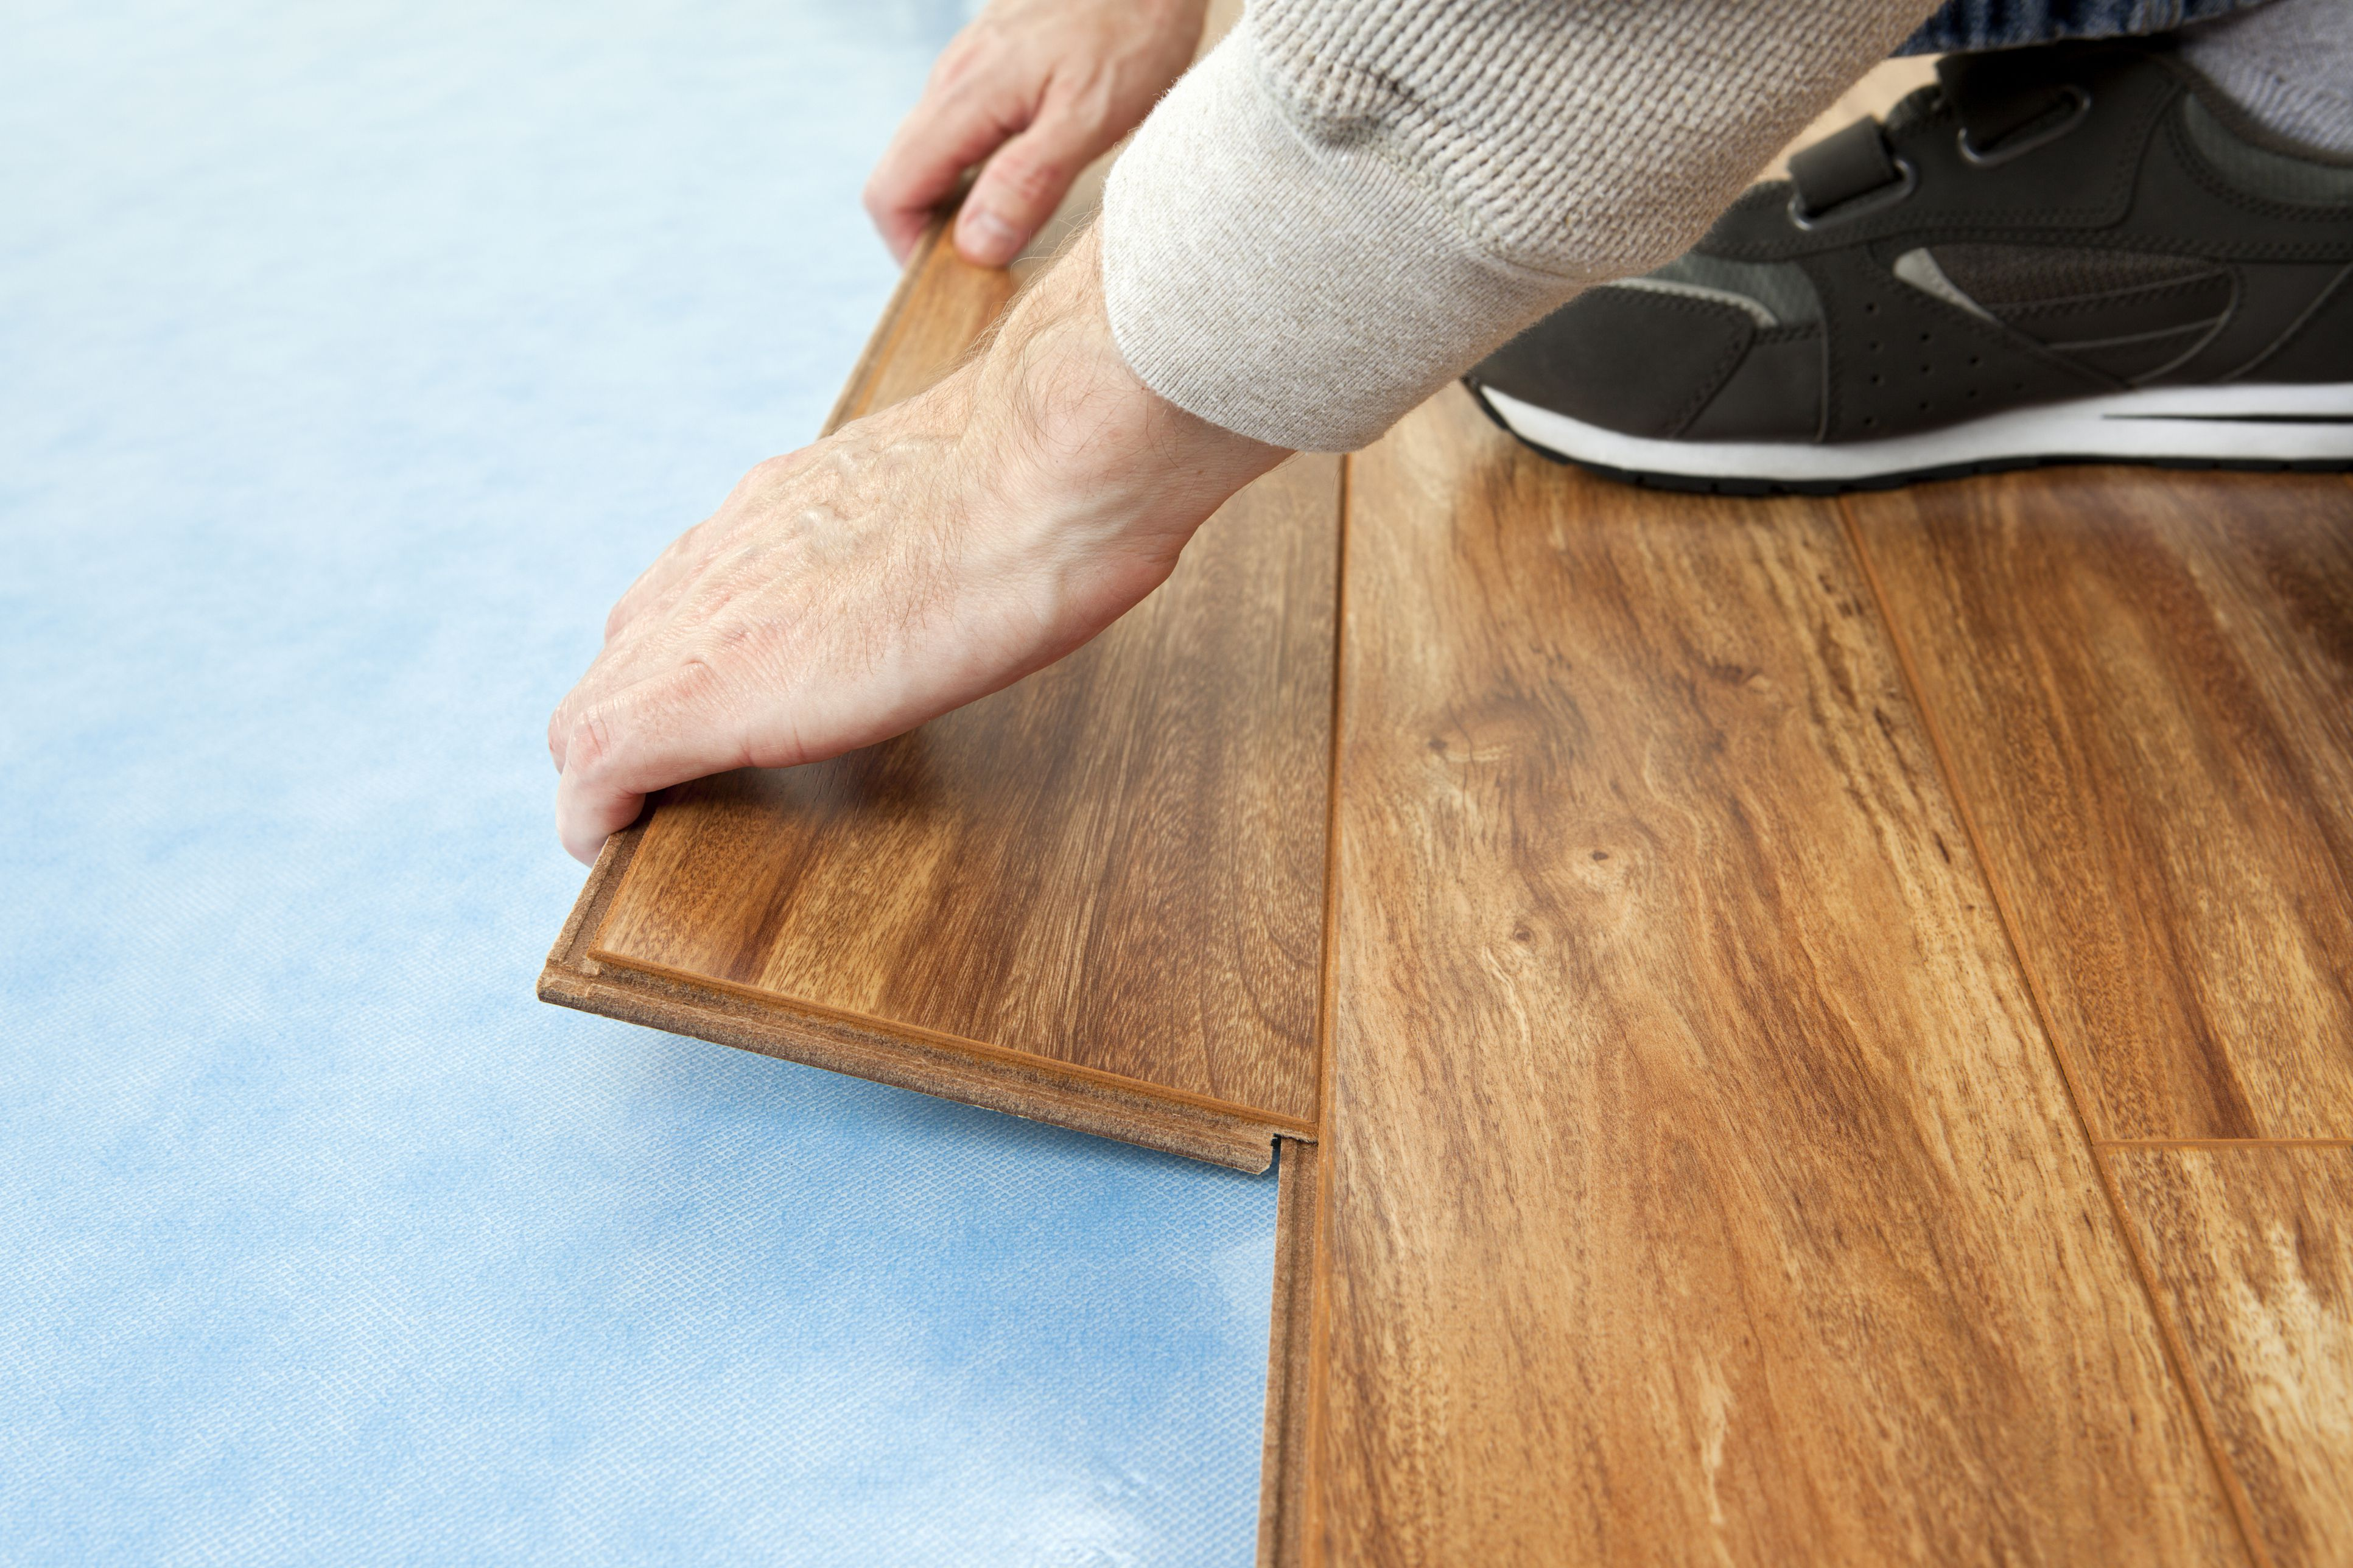 Install cement board underlayment for tile flooring how floor underlayment can act as sound barrier dailygadgetfo Images